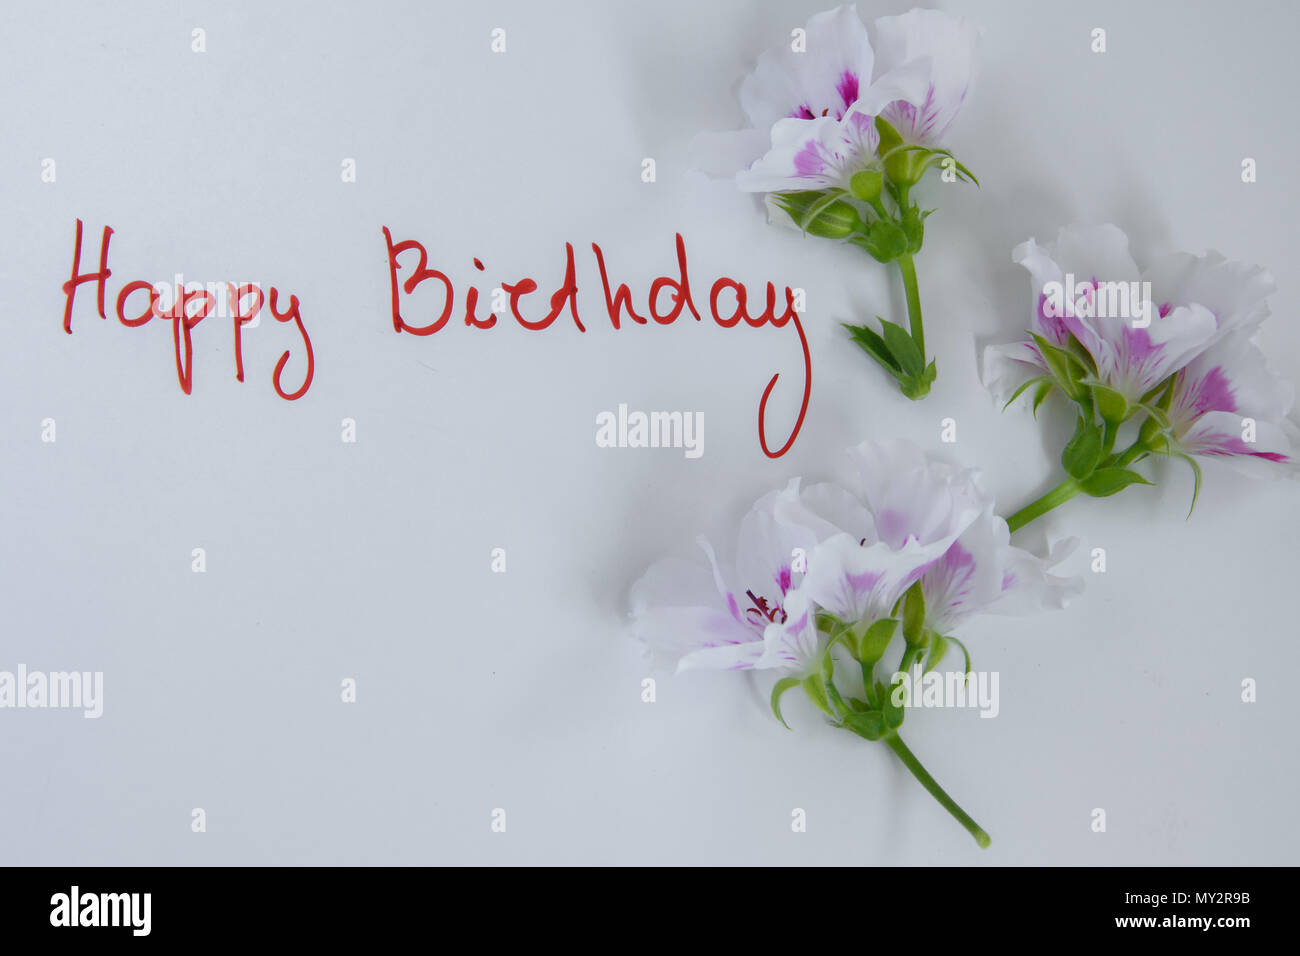 Happy Birthday Greeting Card With Fresh Flowers On White Background